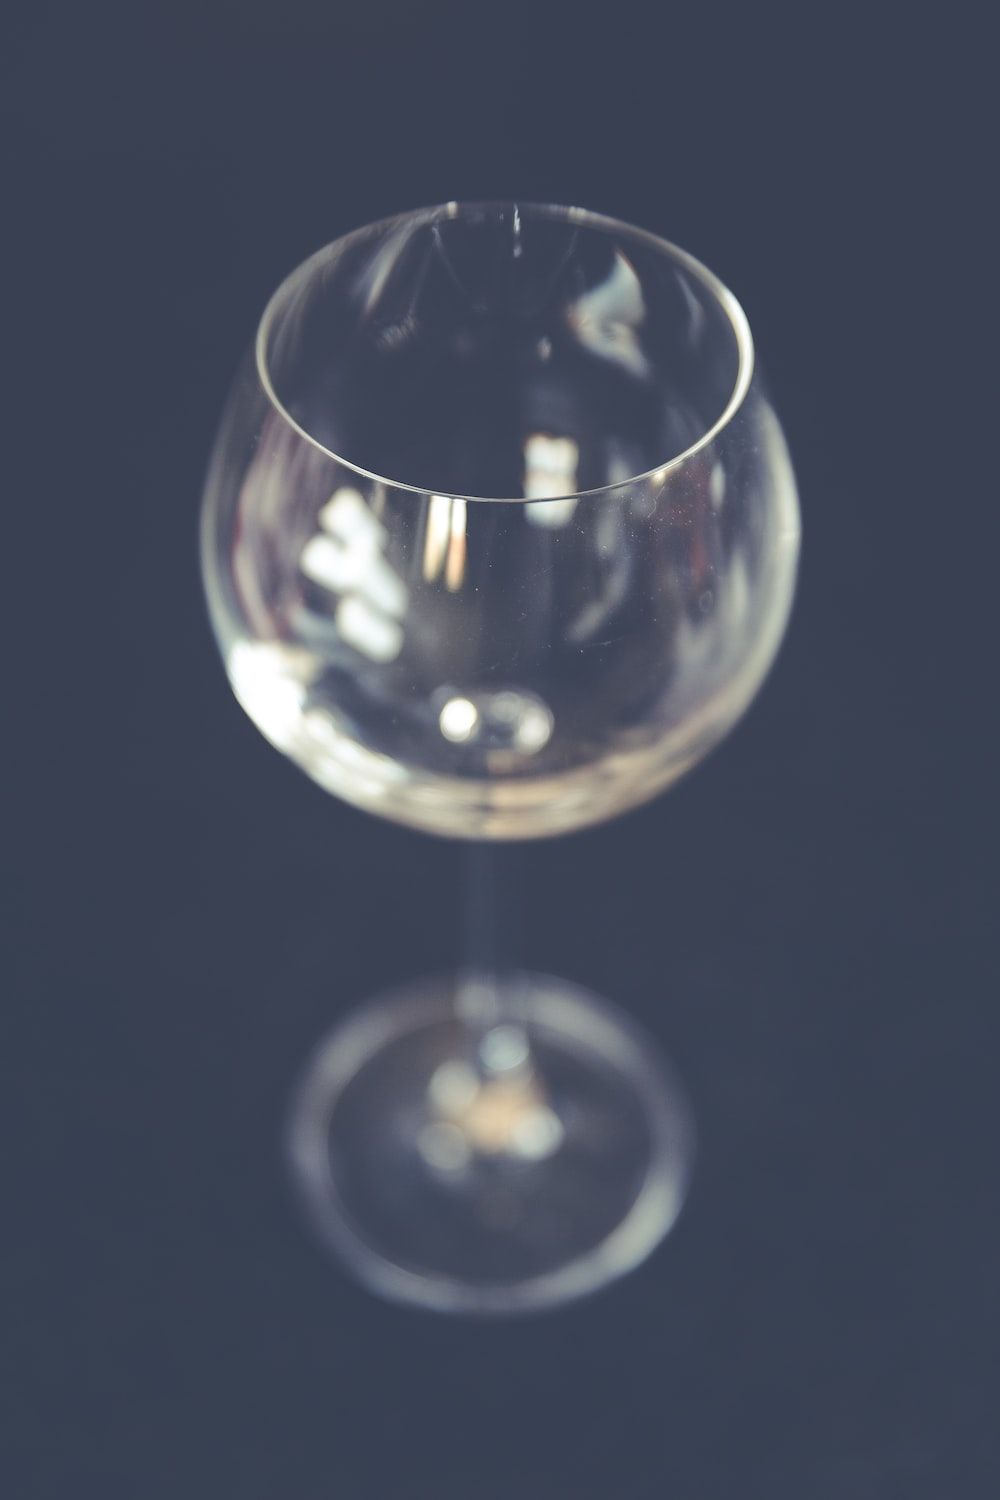 An empty wine glass.